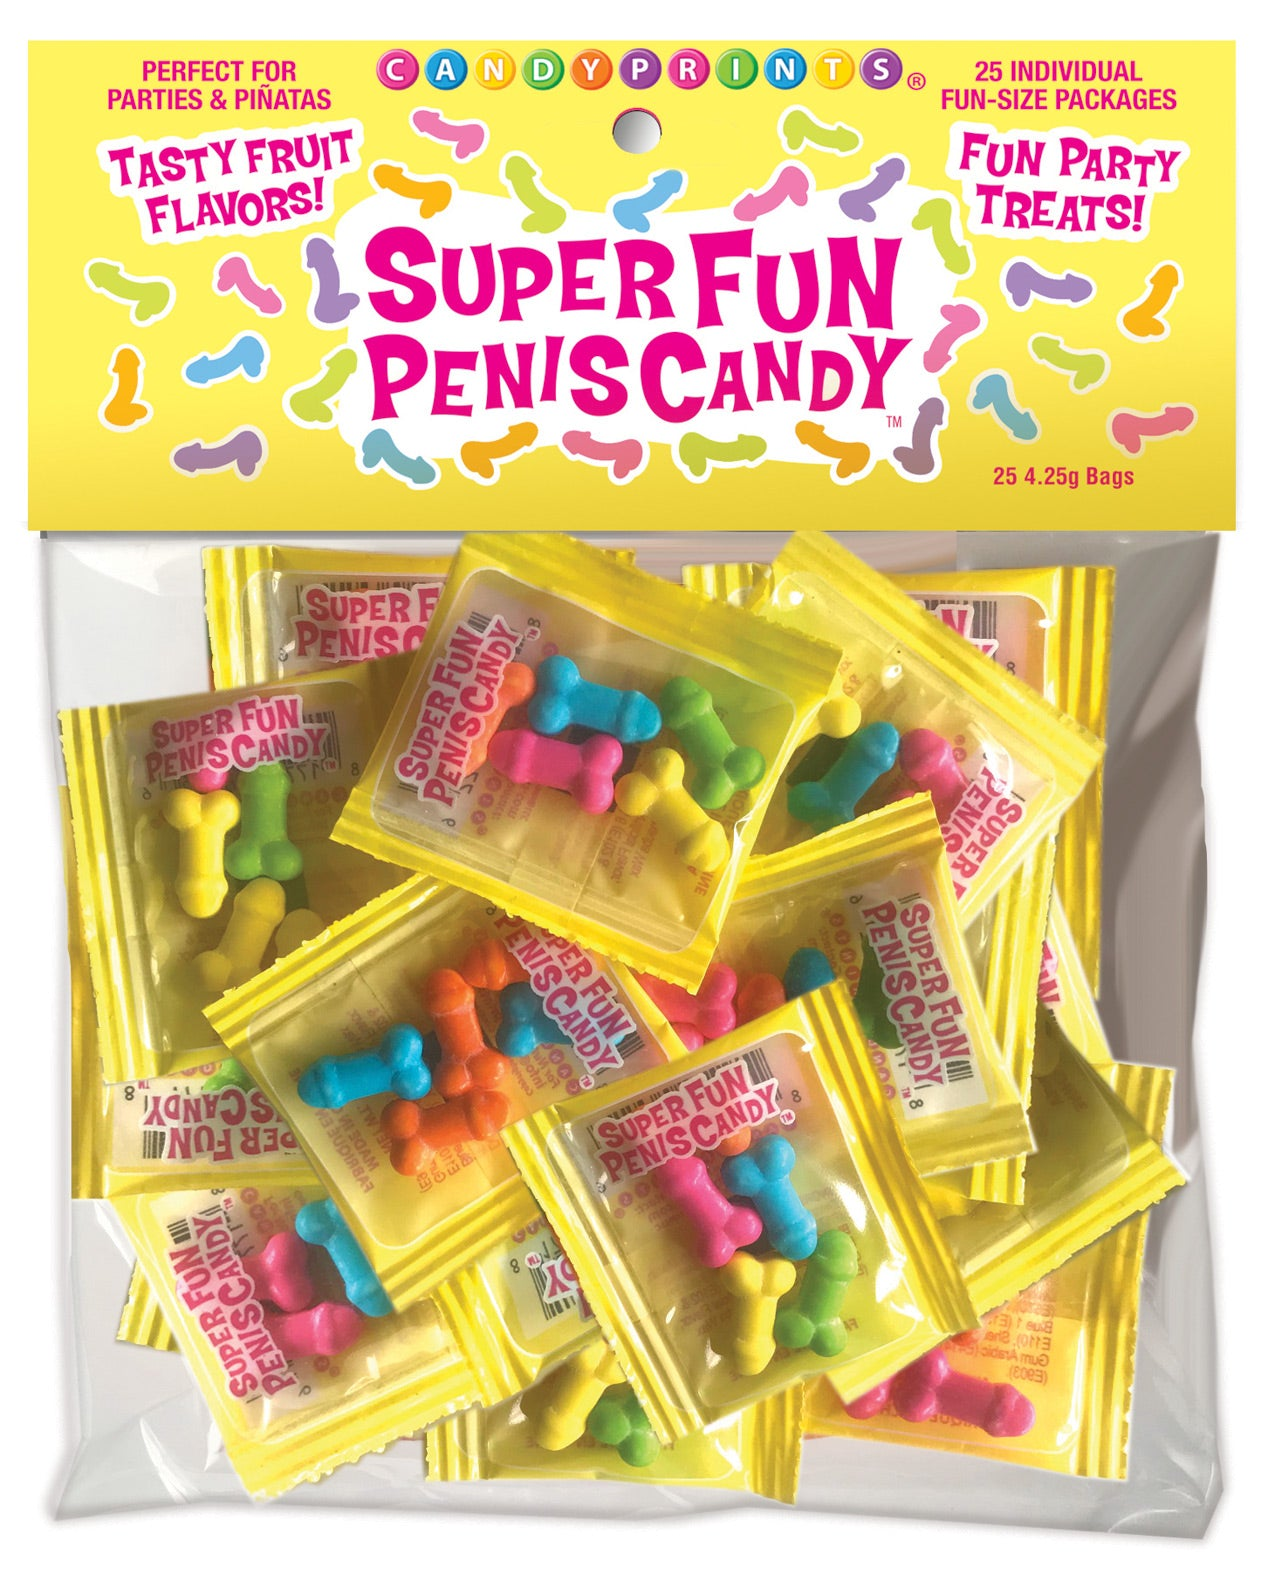 Super Fun Penis Candy - Bag of 25